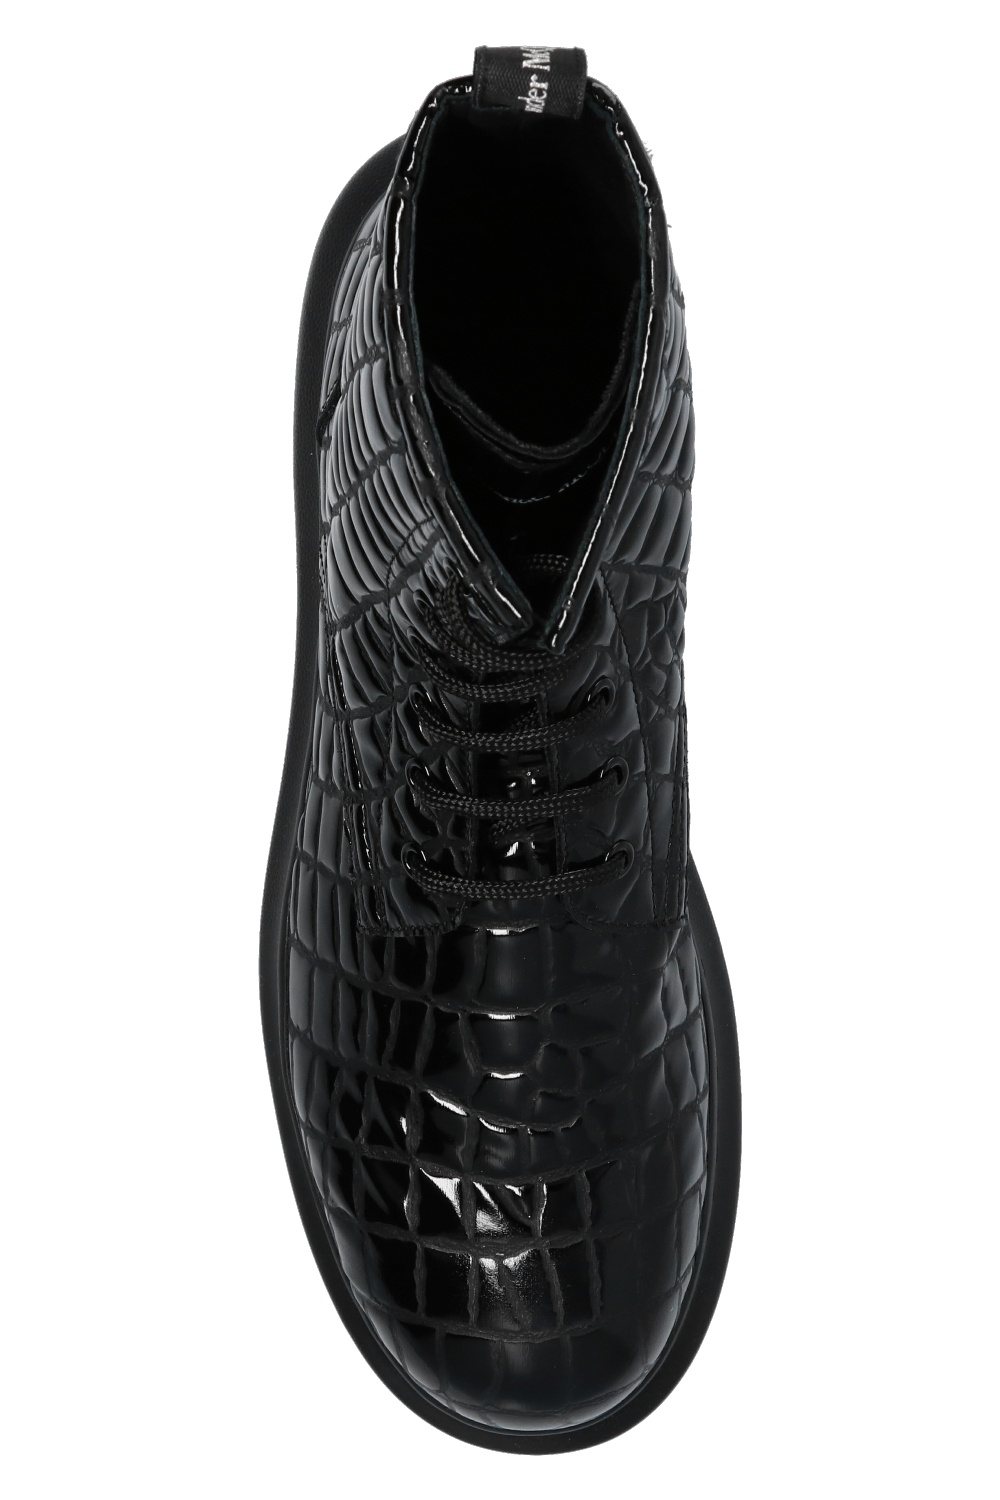 Alexander McQueen Ankle boots with logo